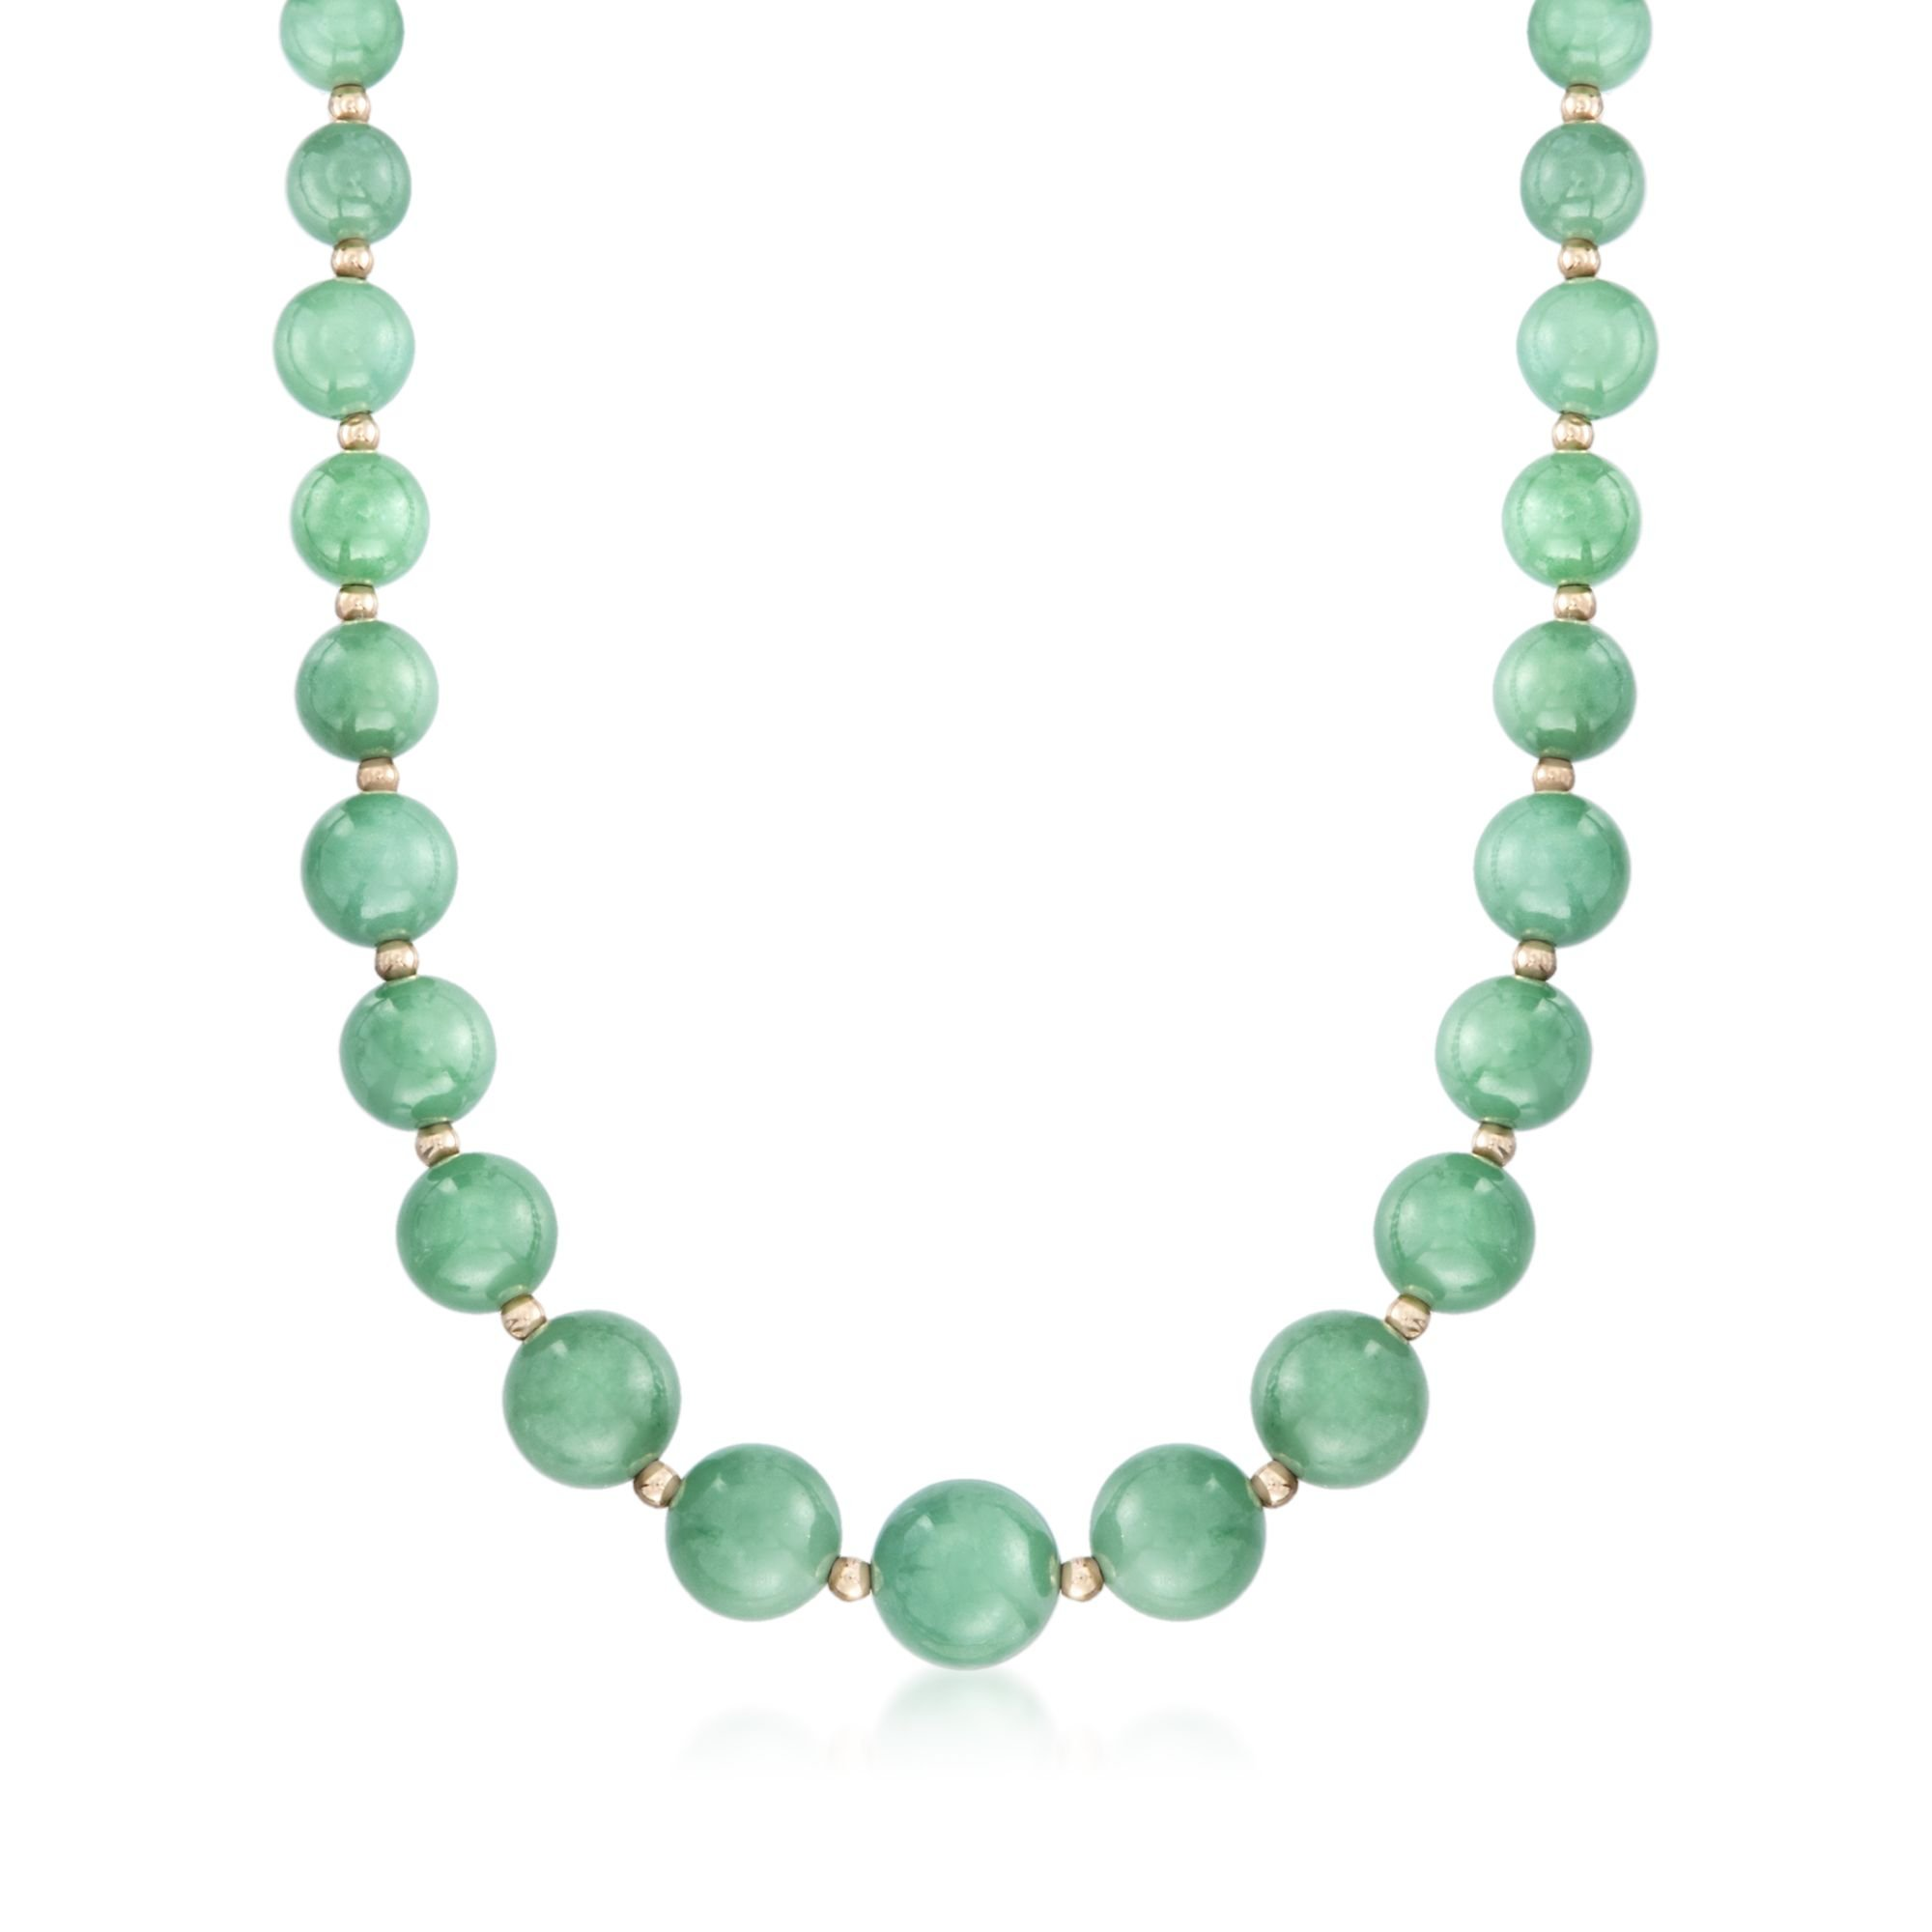 Ross-Simons 6-12mm Green Jade Bead Necklace With 14kt Yellow Gold